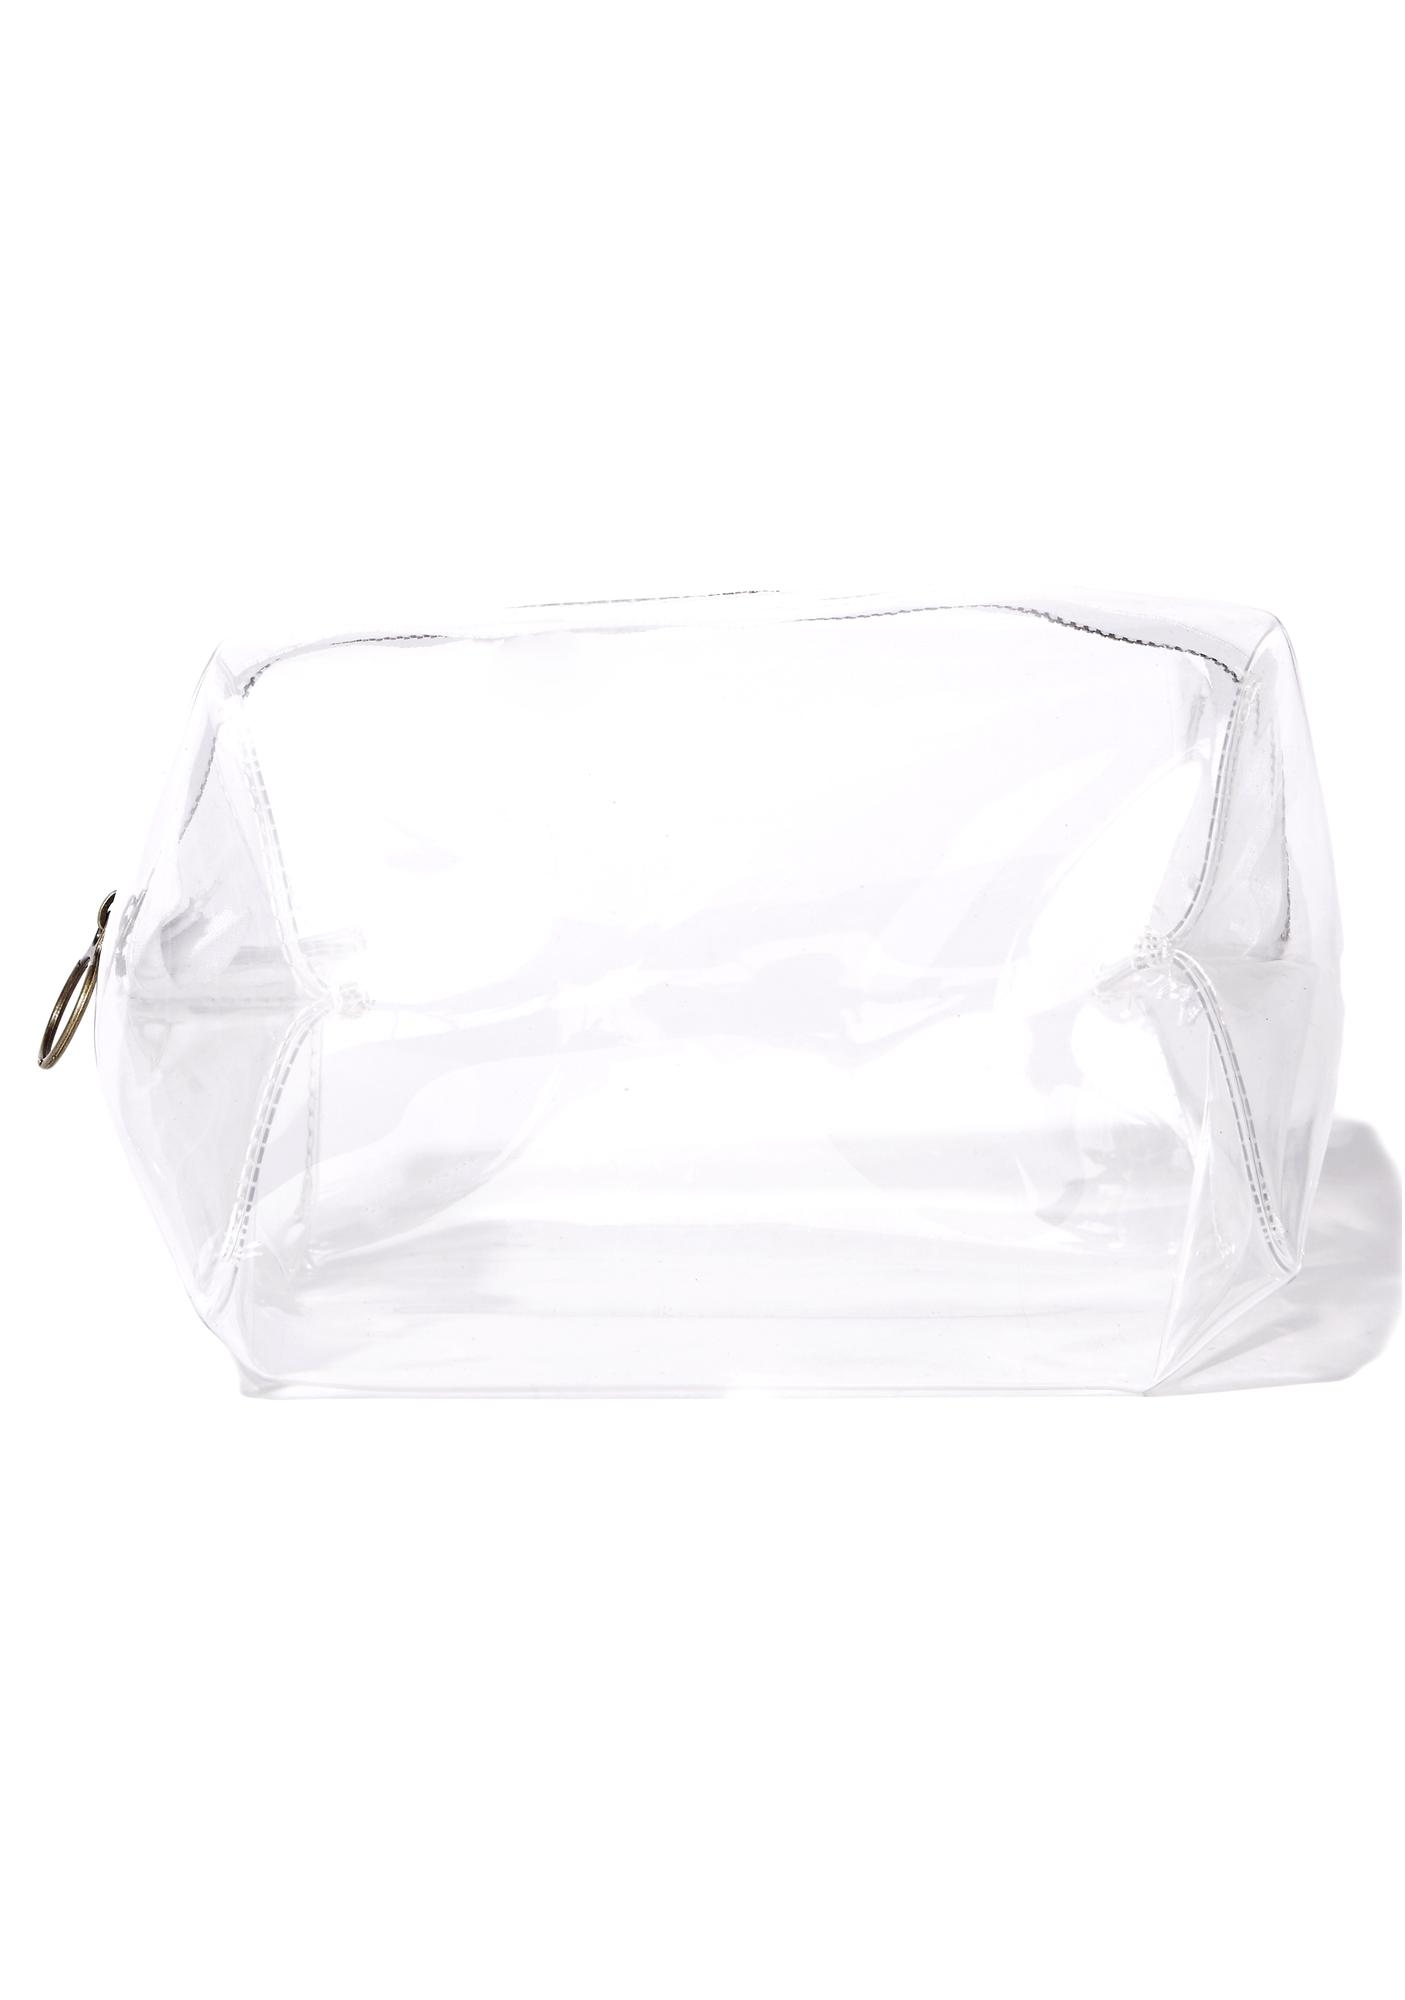 Clearly Slaying Transparent Makeup Bag